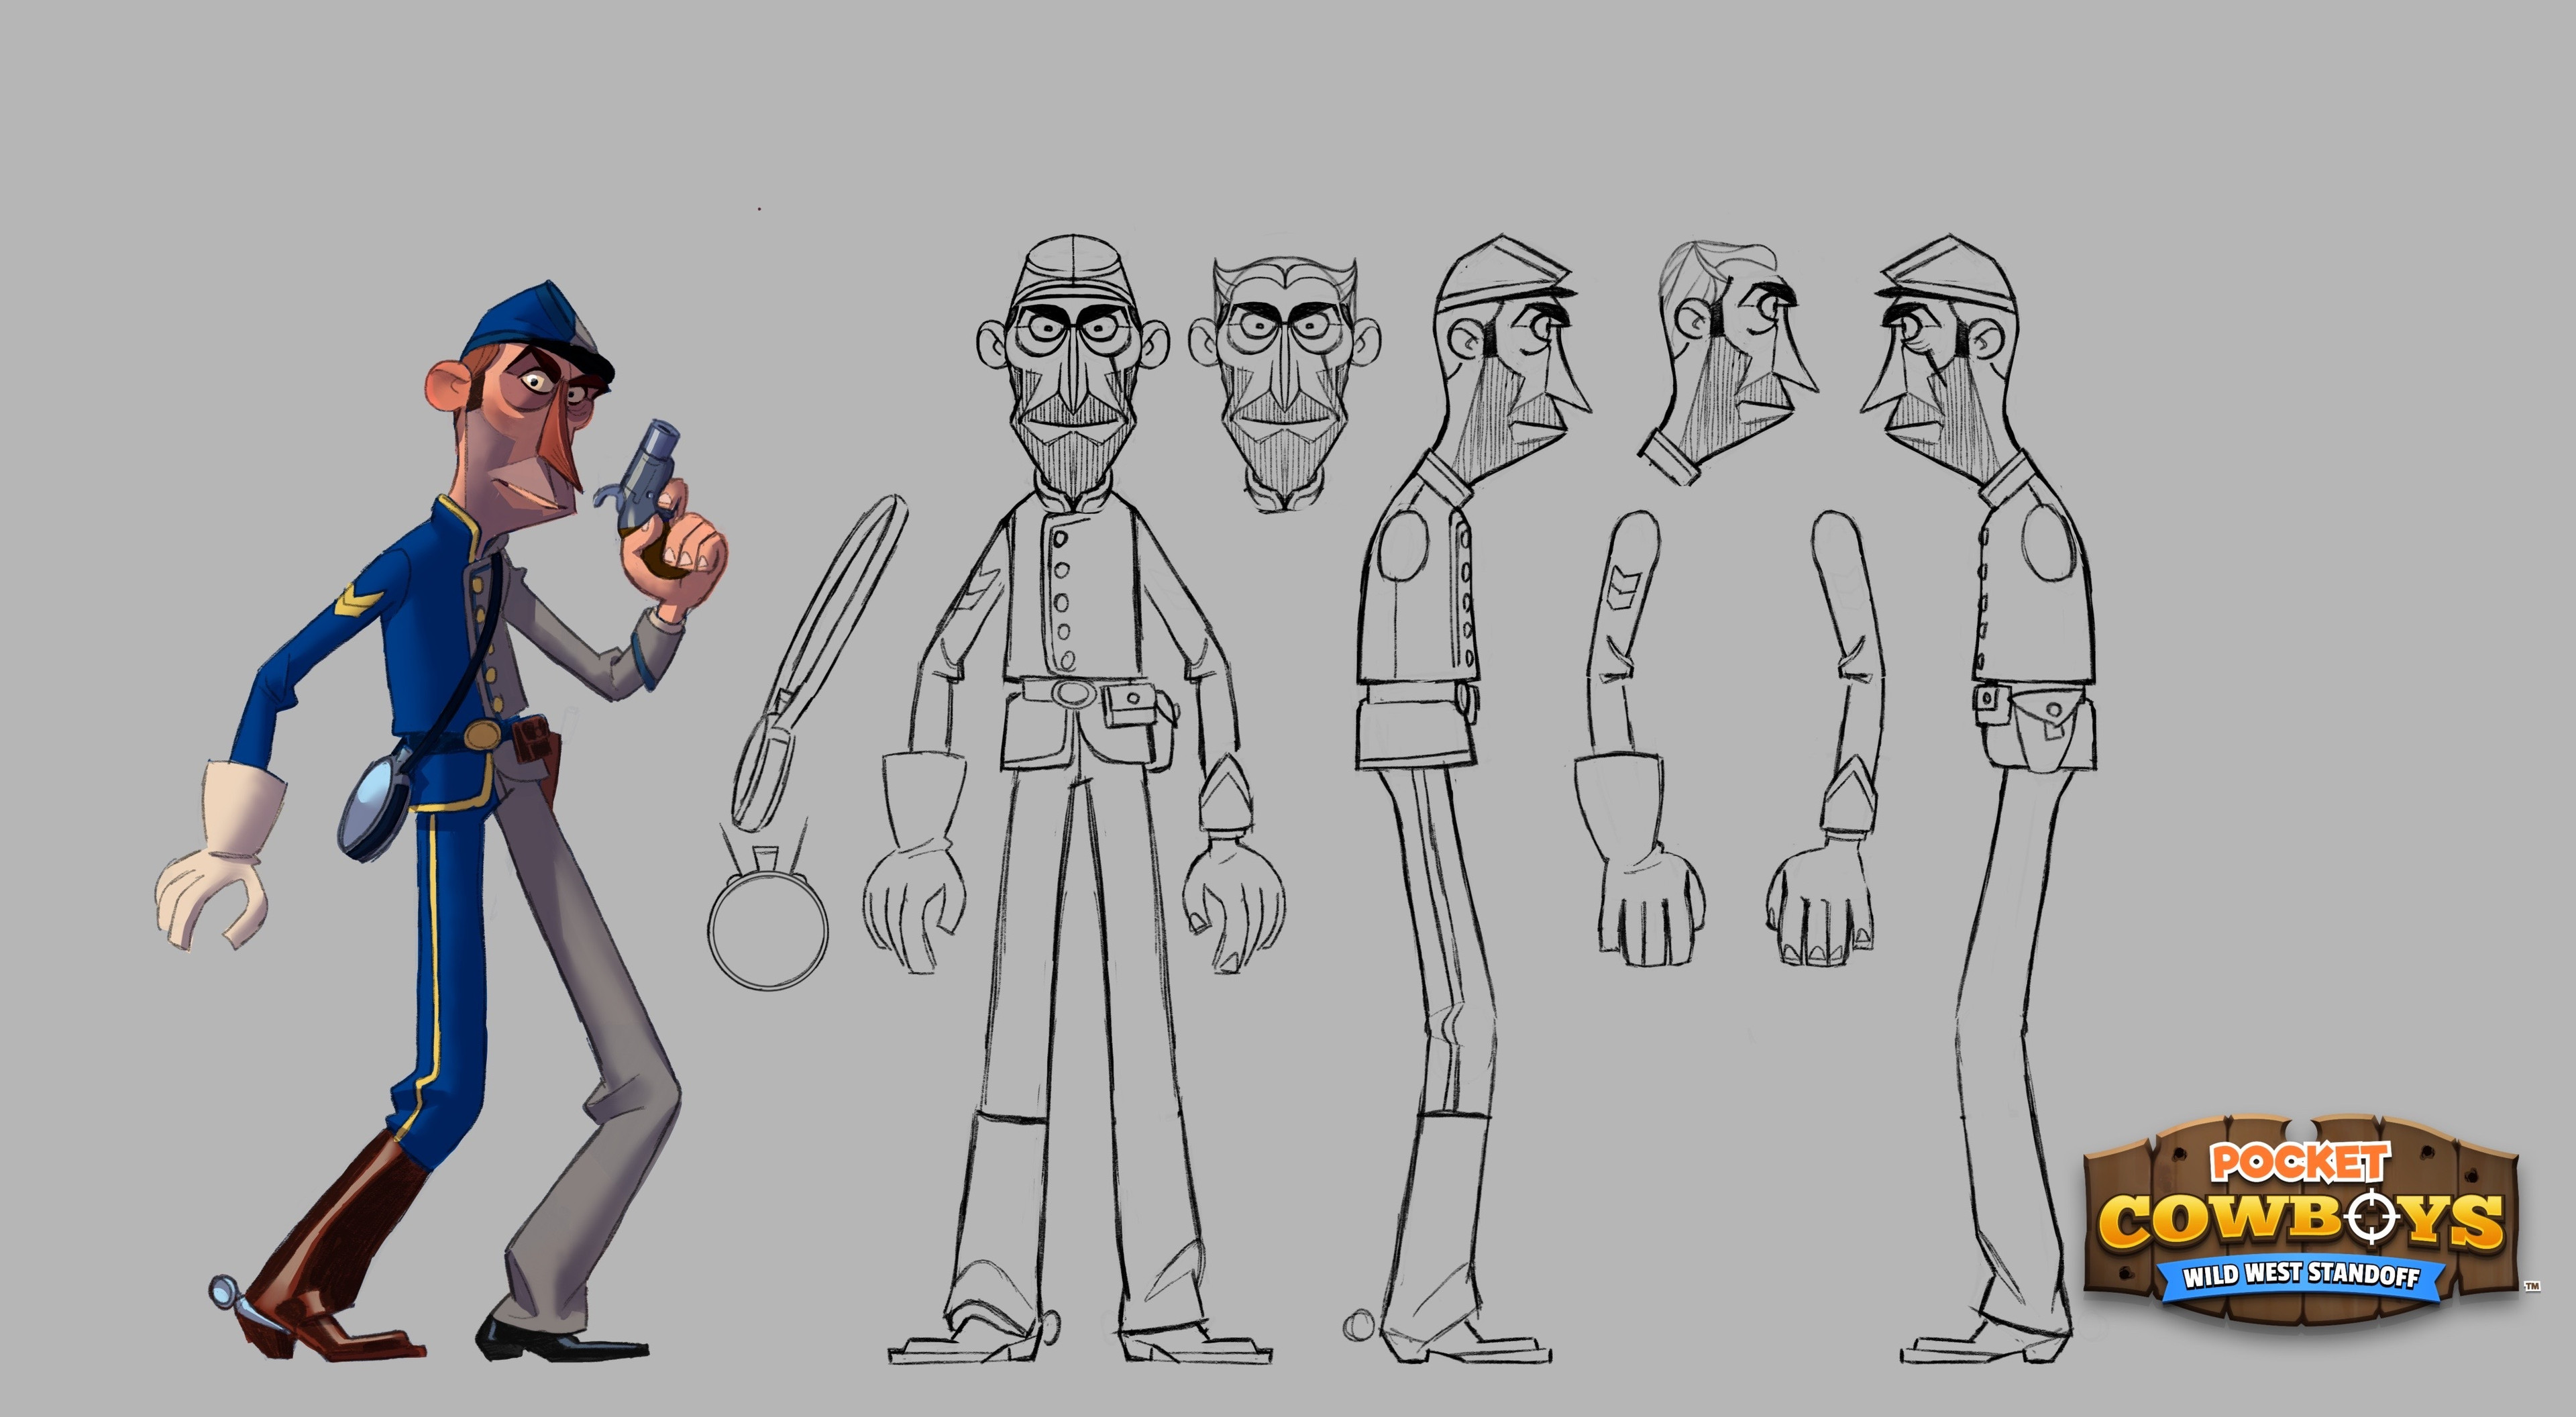 Pocket Cowboys! I was lucky enough to be the main character designer on this cool game.